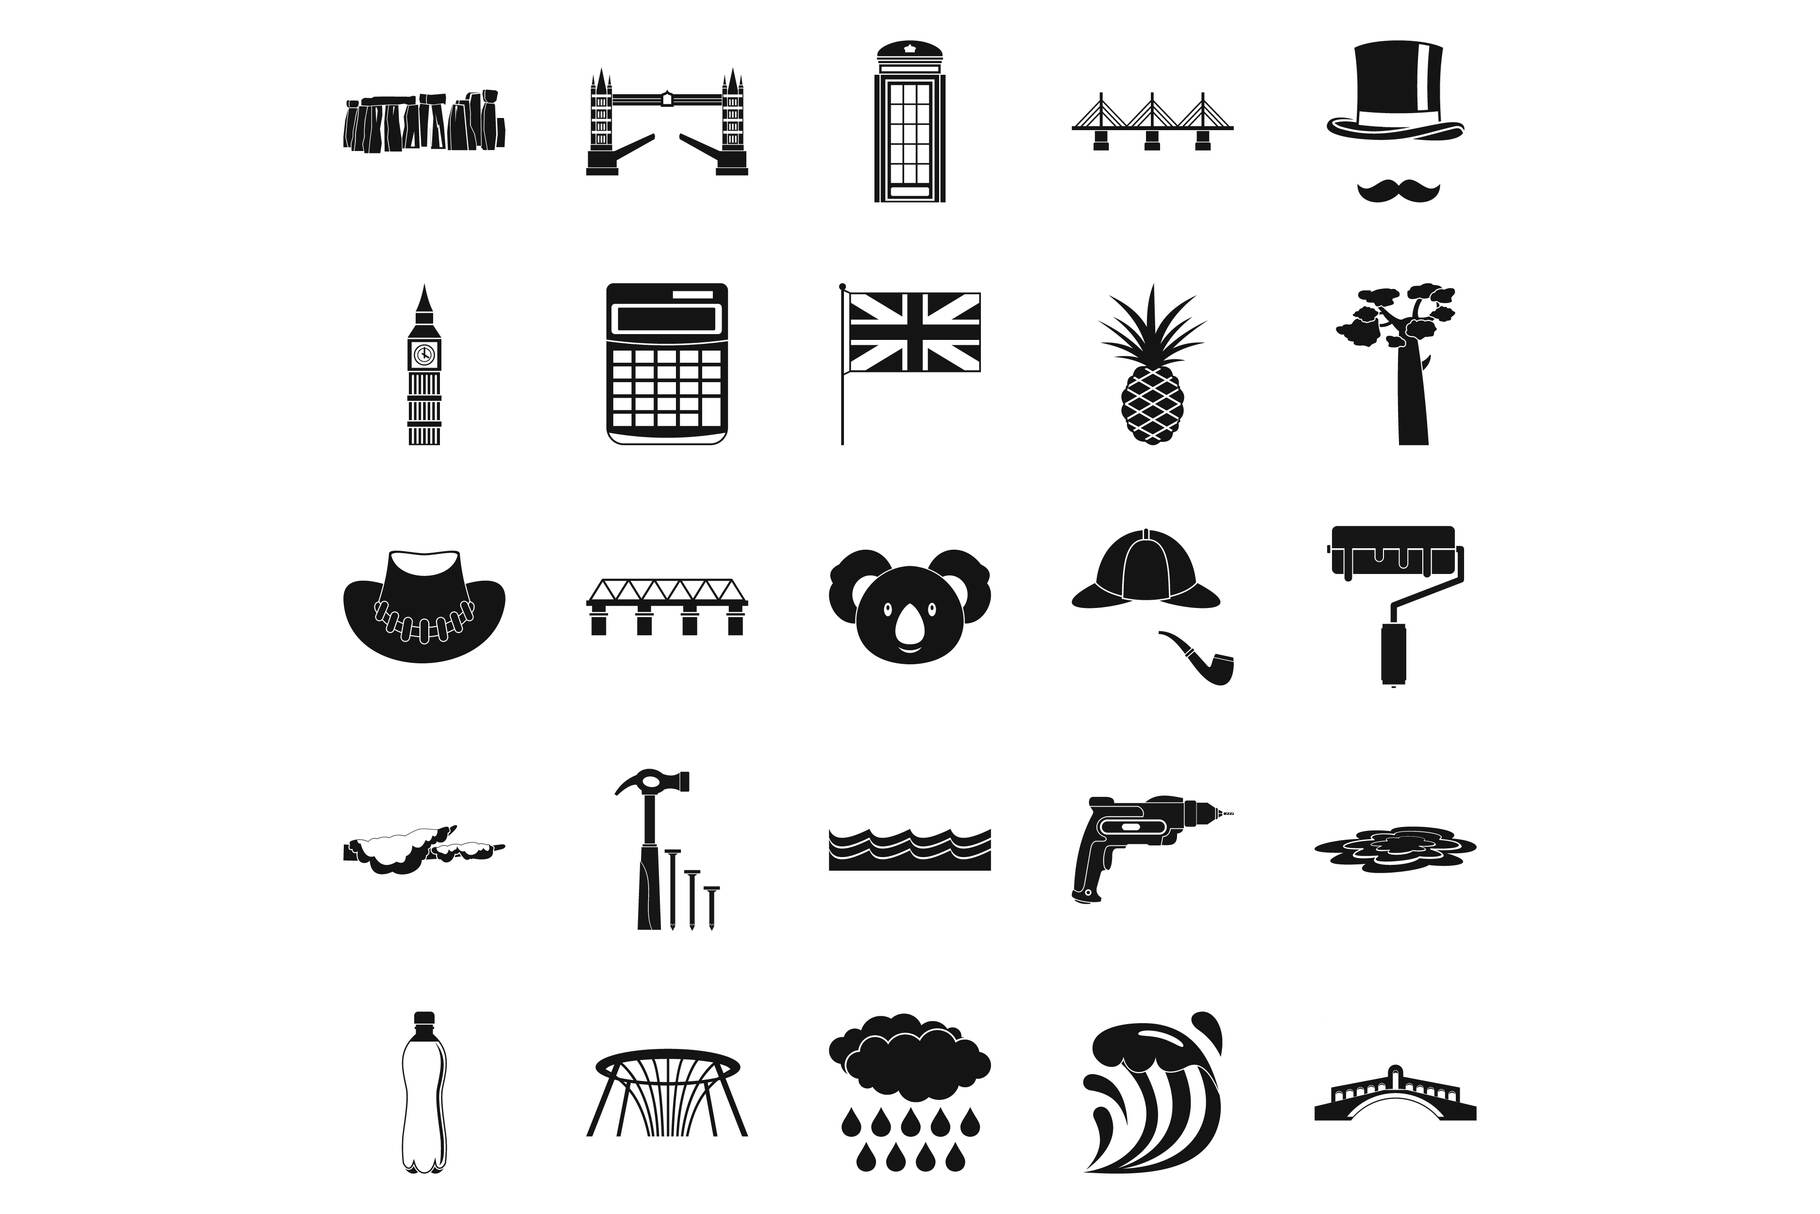 Crossway icons set, simple style example image 1